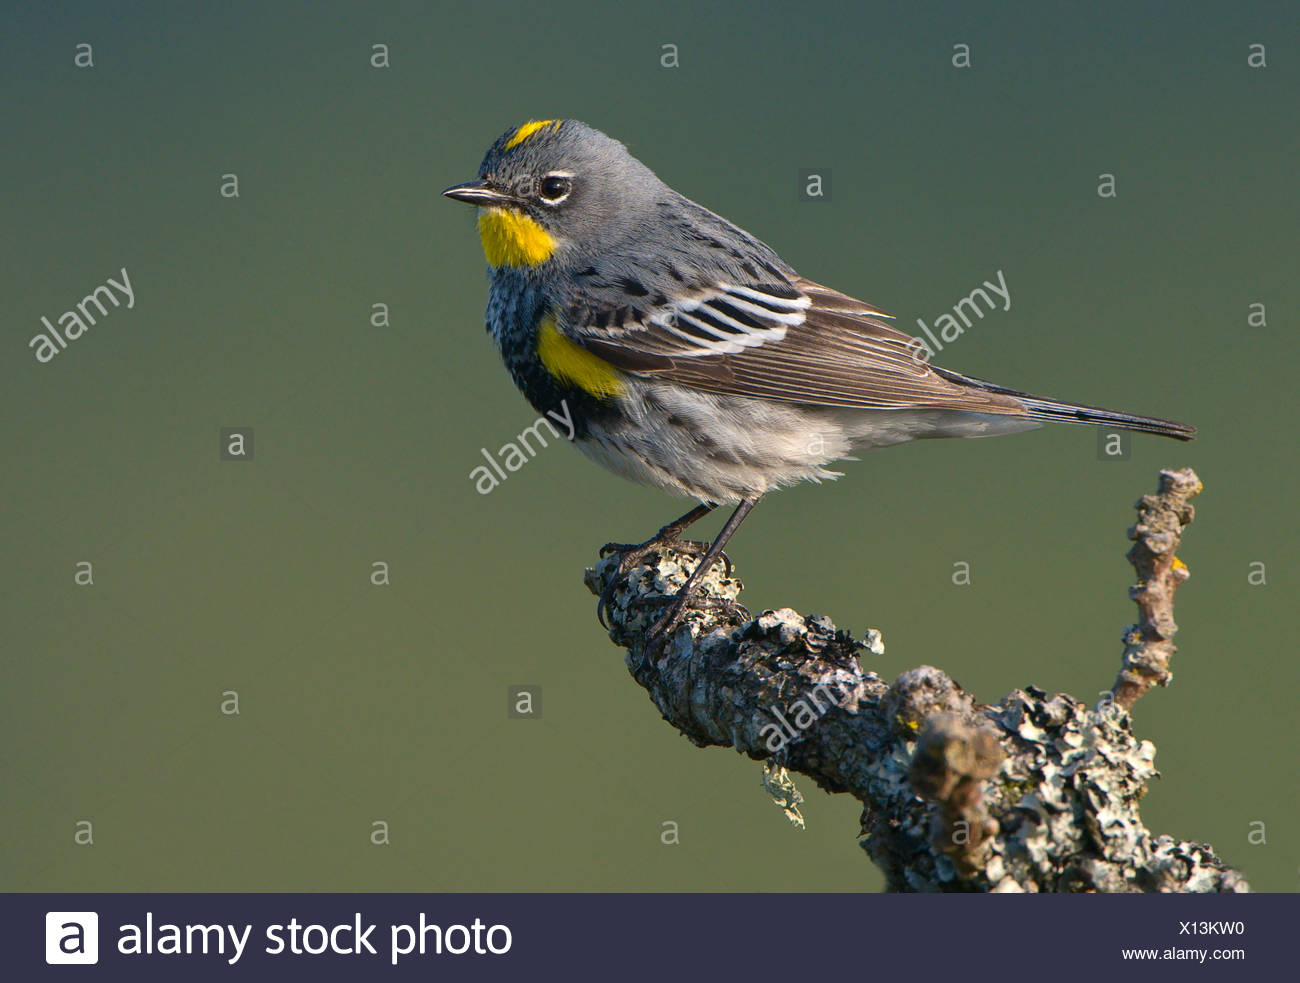 Male Yellow-rumped warbler (Dendroica coronata) on Garry oak perch at Observatory Hill, Saanich, British Columbia, Canada - Stock Image